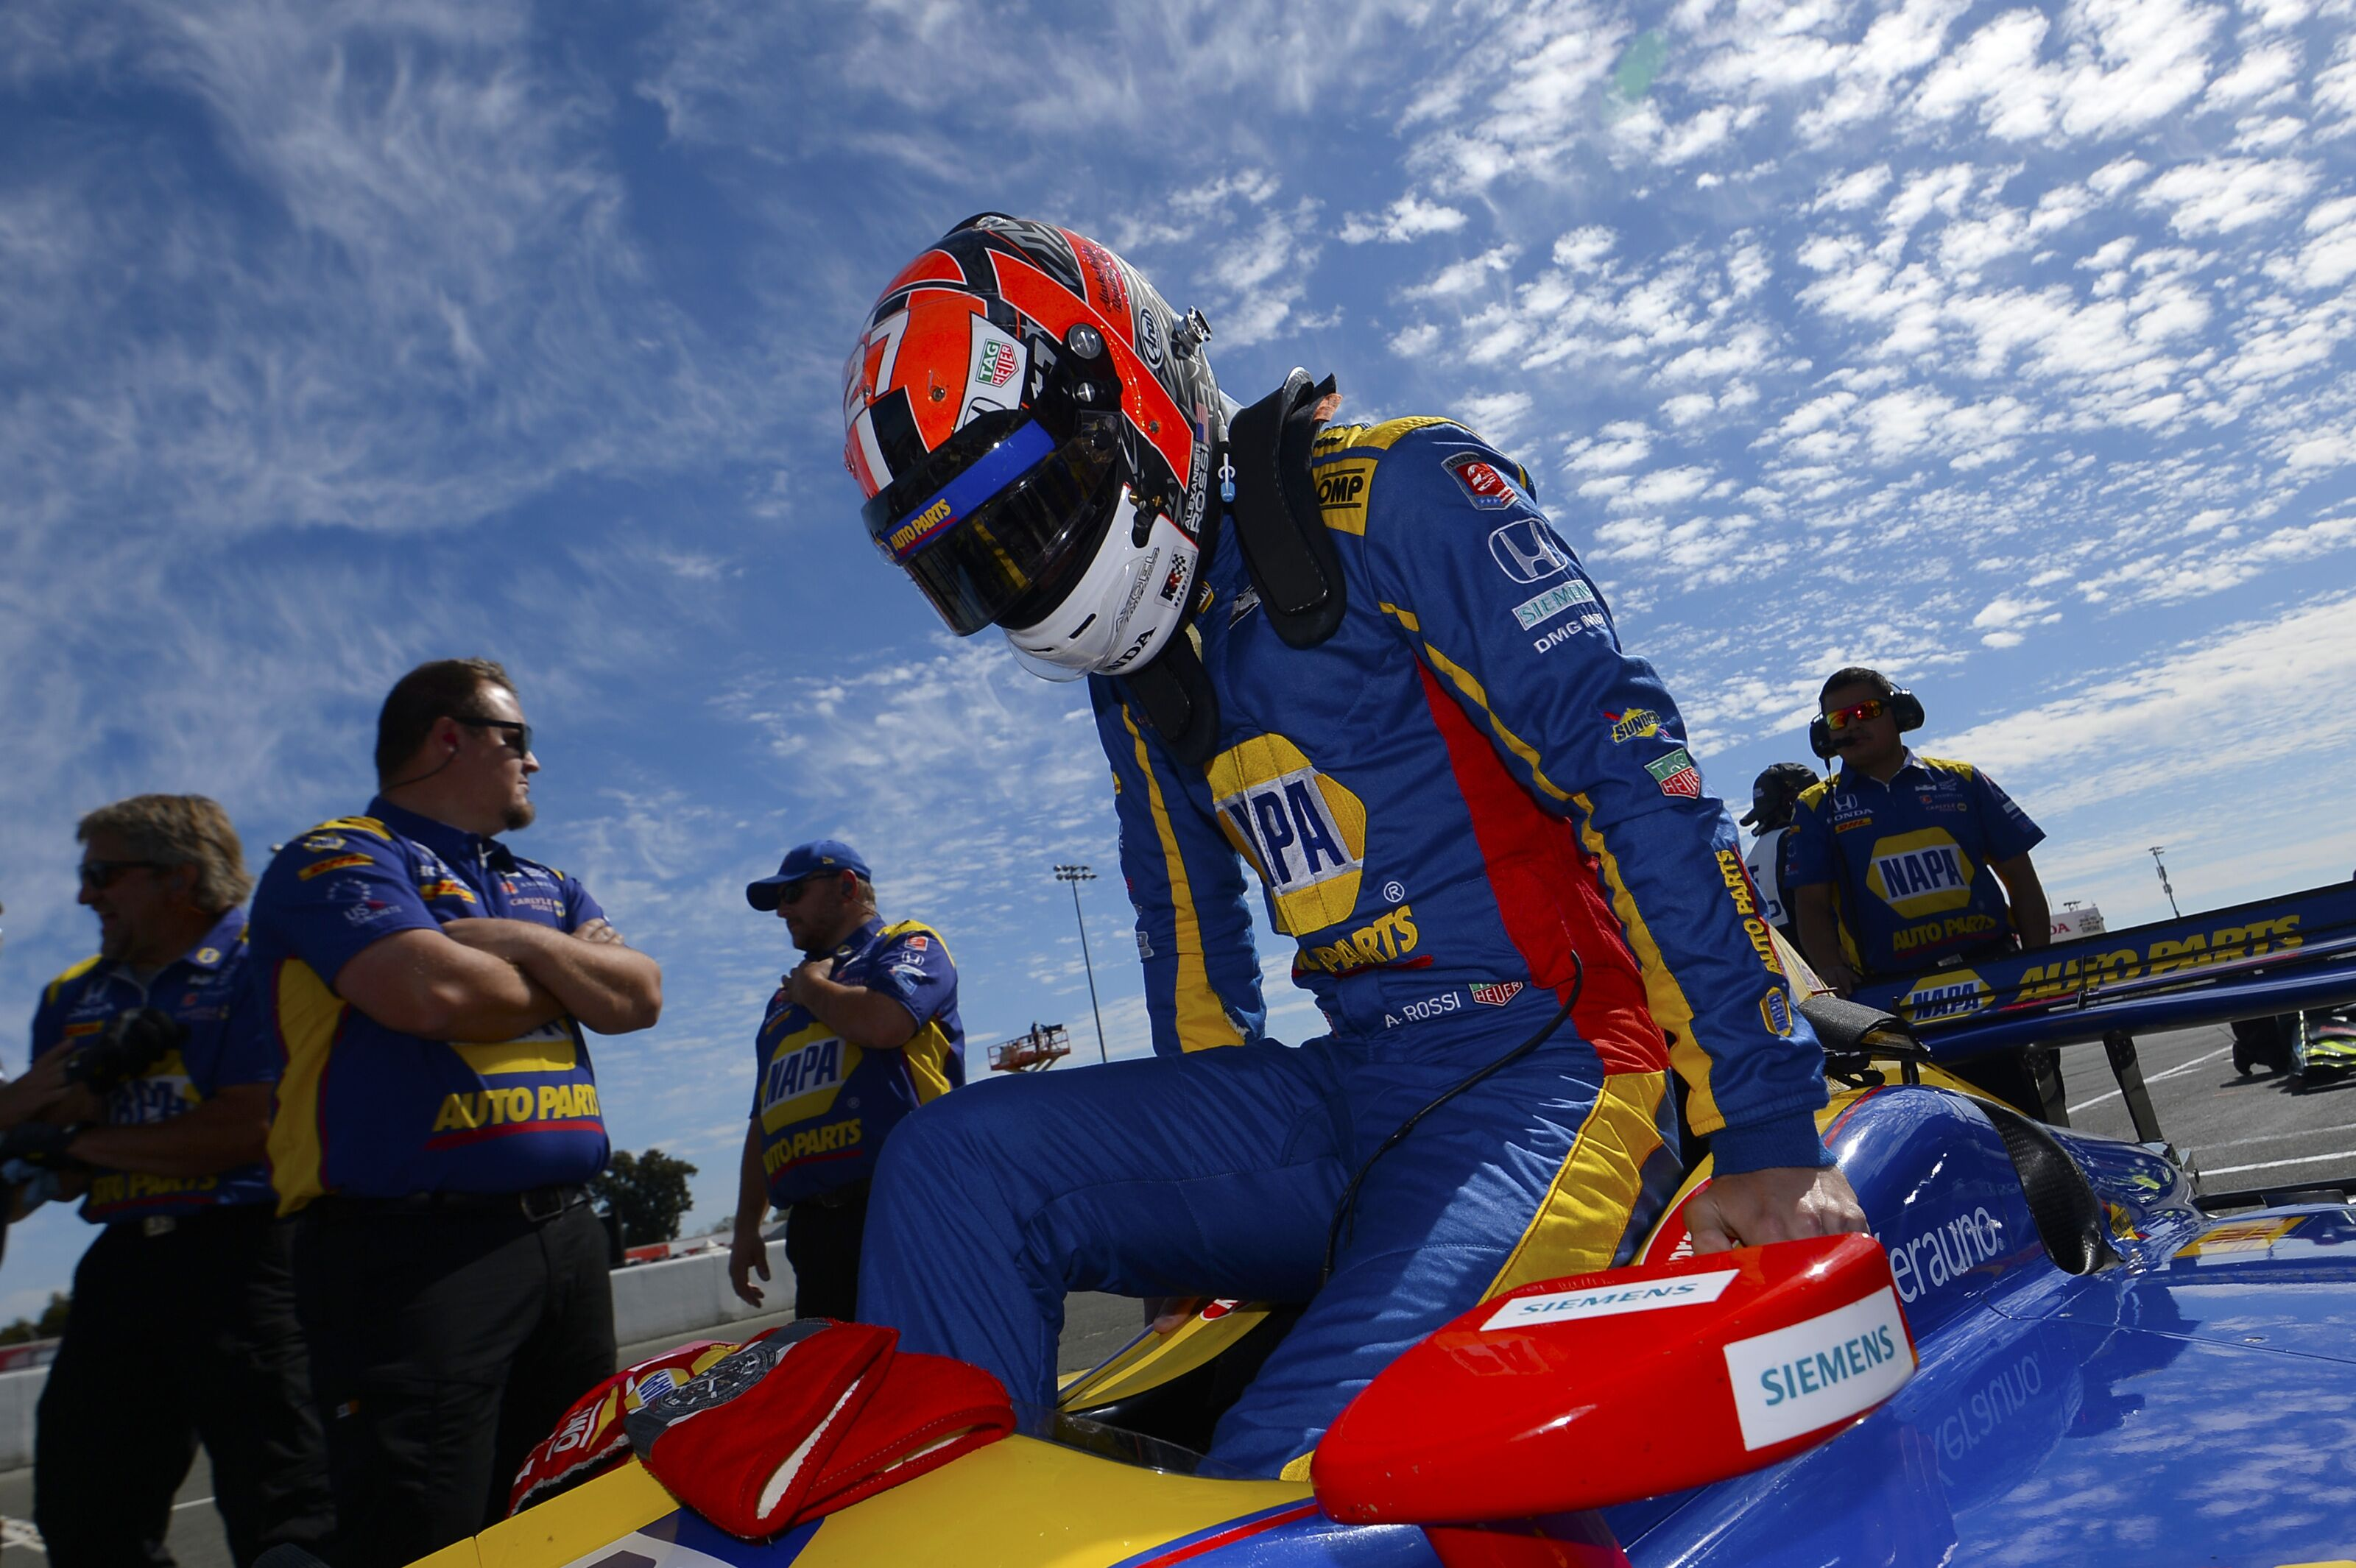 IndyCar contenders: Alexander Rossi talks mission to win first title